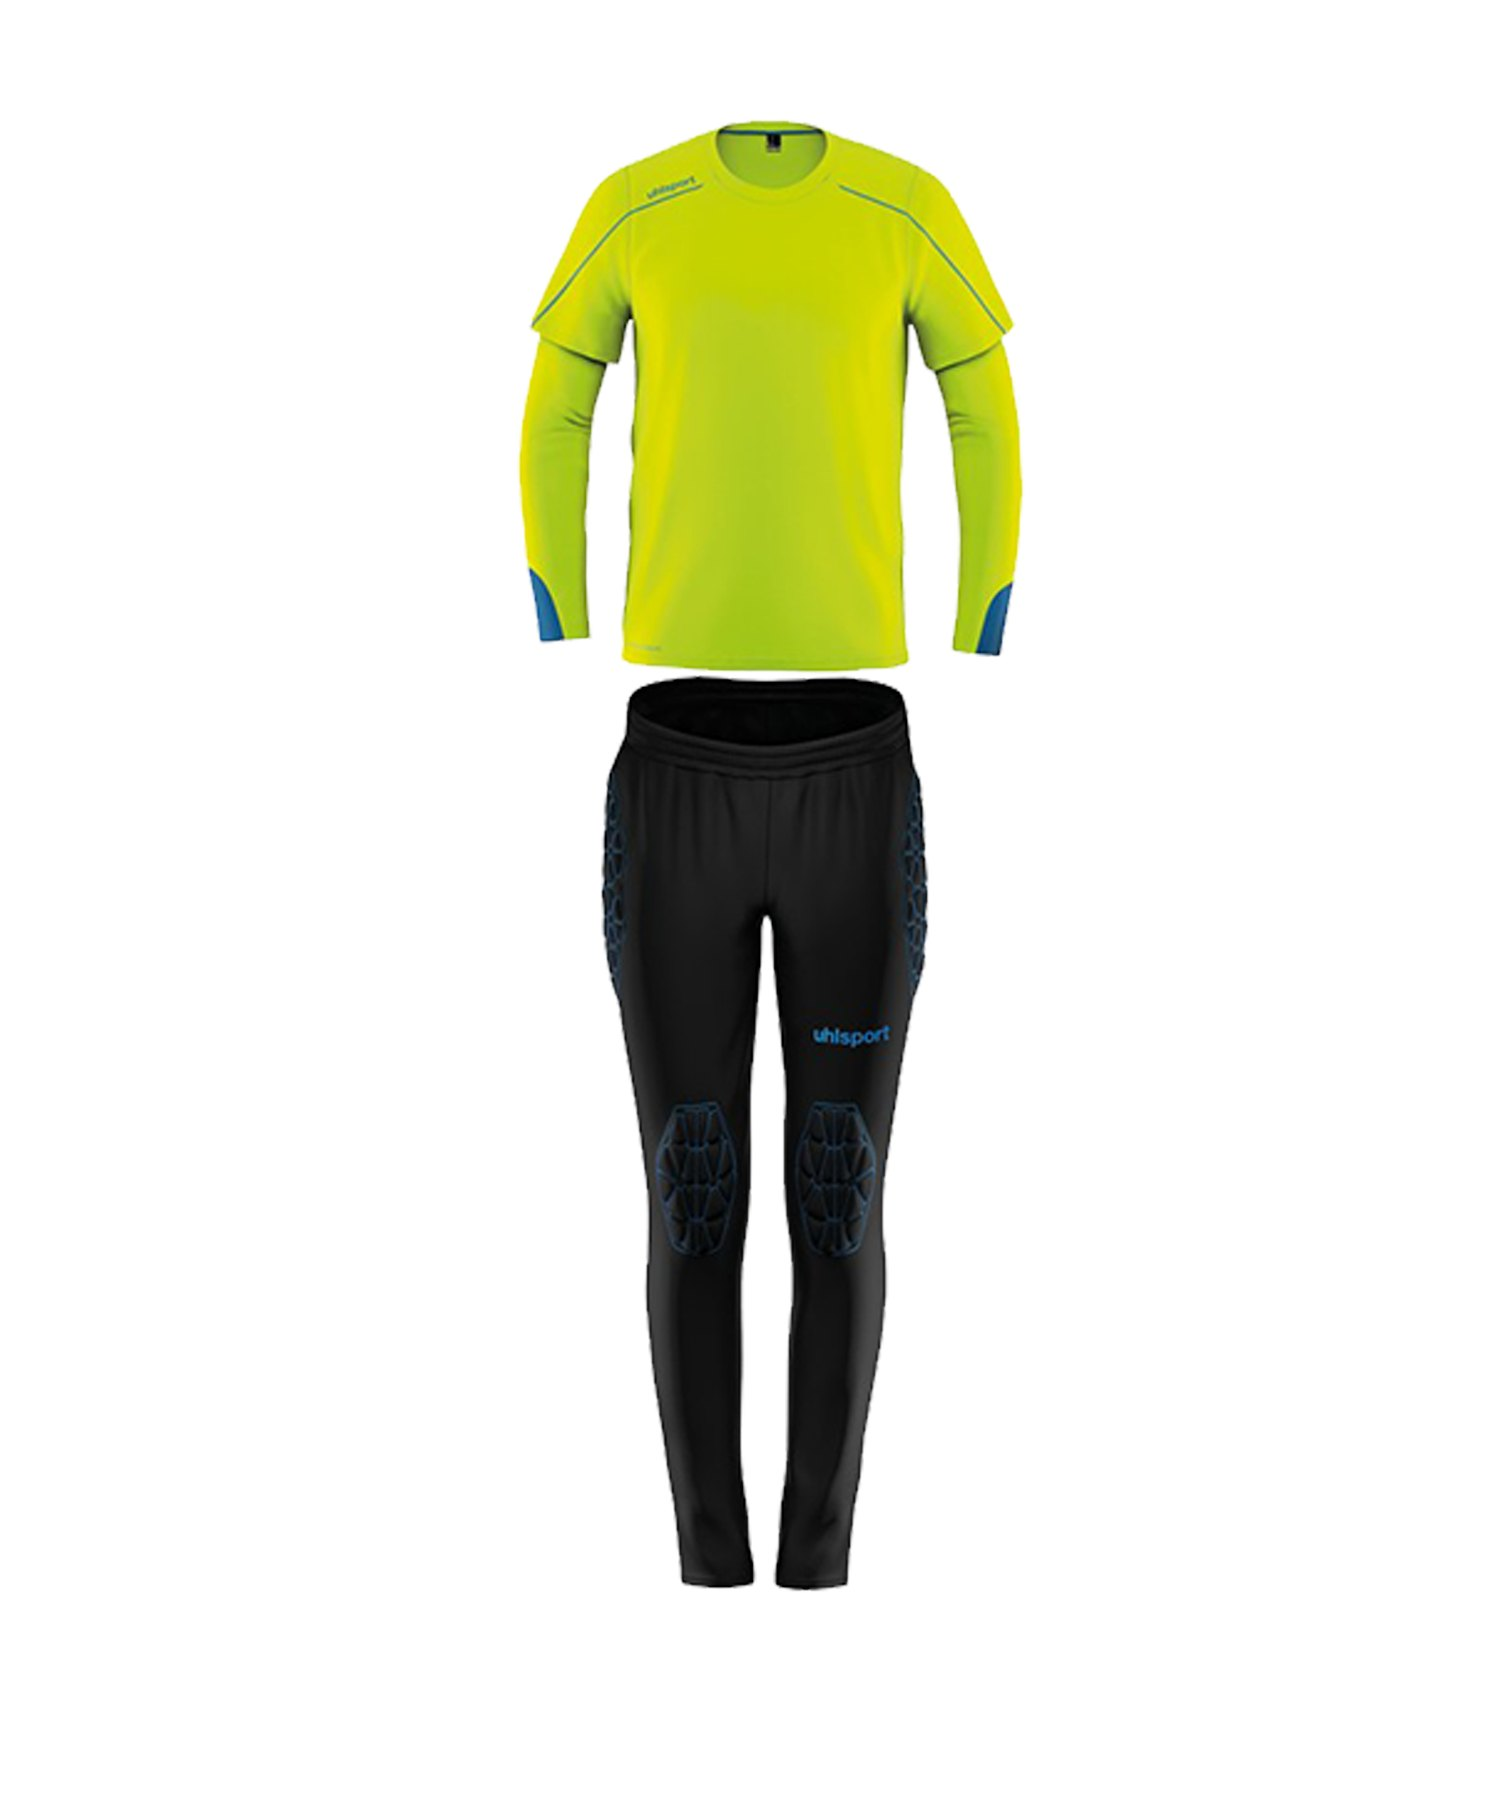 Uhlsport Stream 22 Torwart-Set Kids Gelb Blau F08 - Gelb